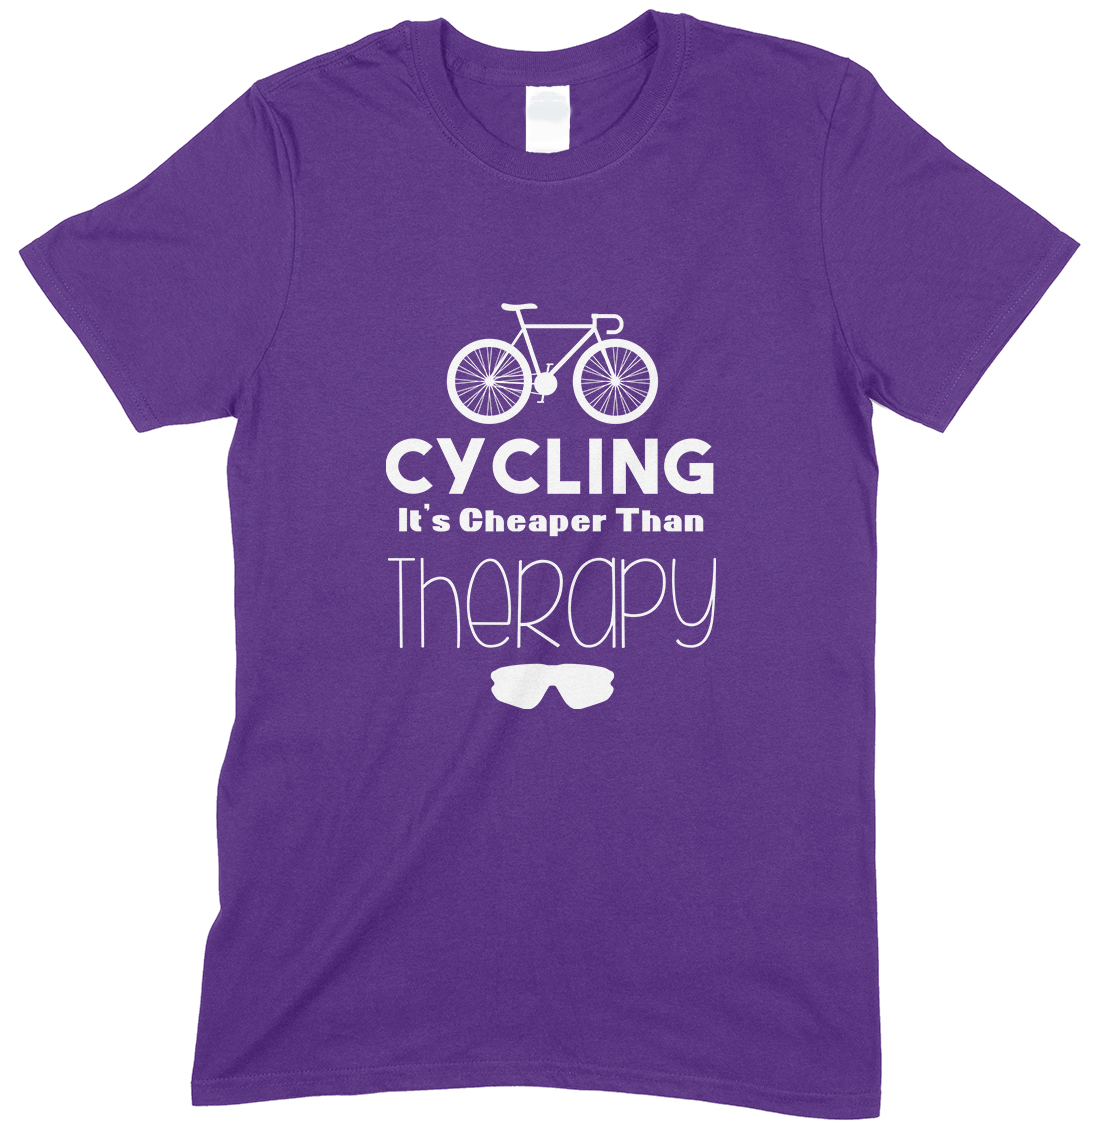 Cycling It's Cheaper Than Therapy-Adults Unisex T Shirt